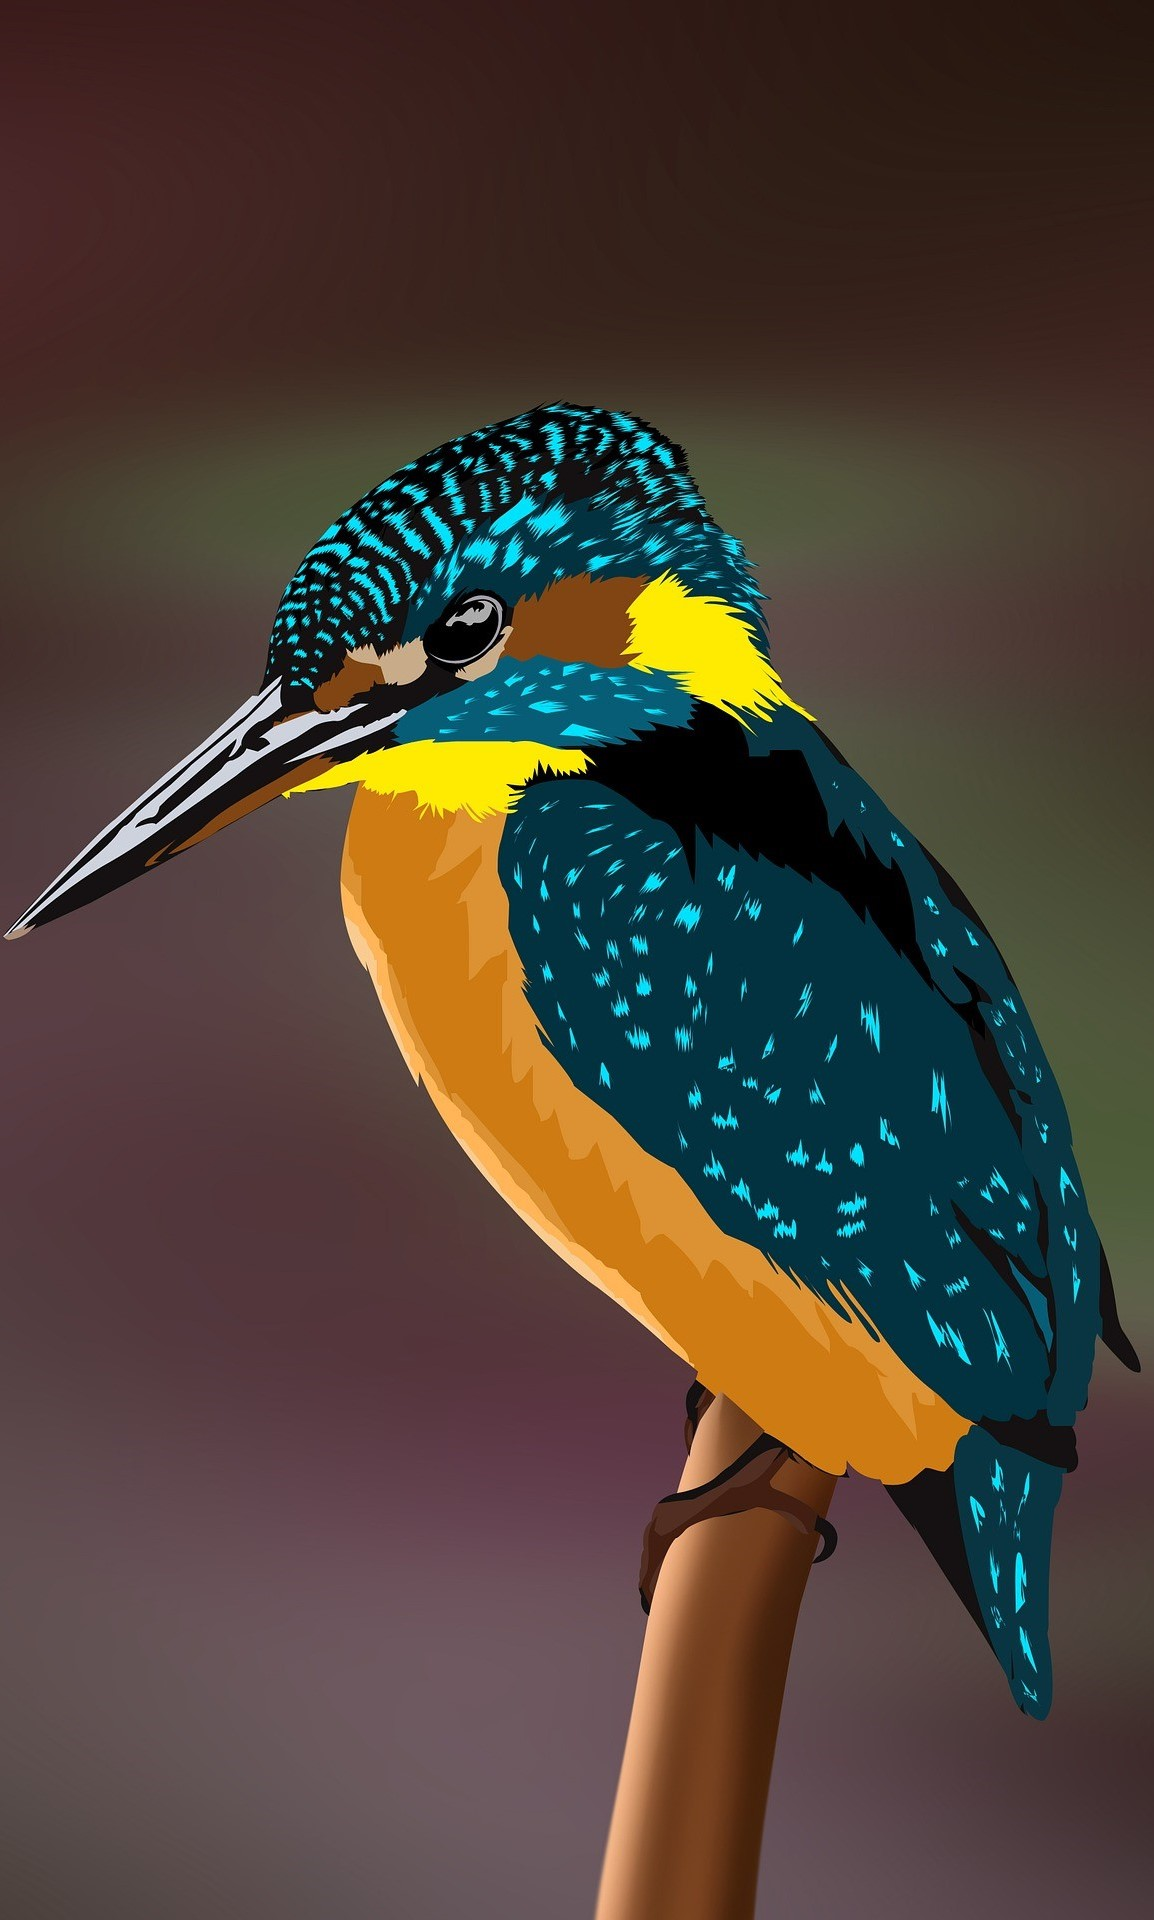 Animated picture of a kingfisher.